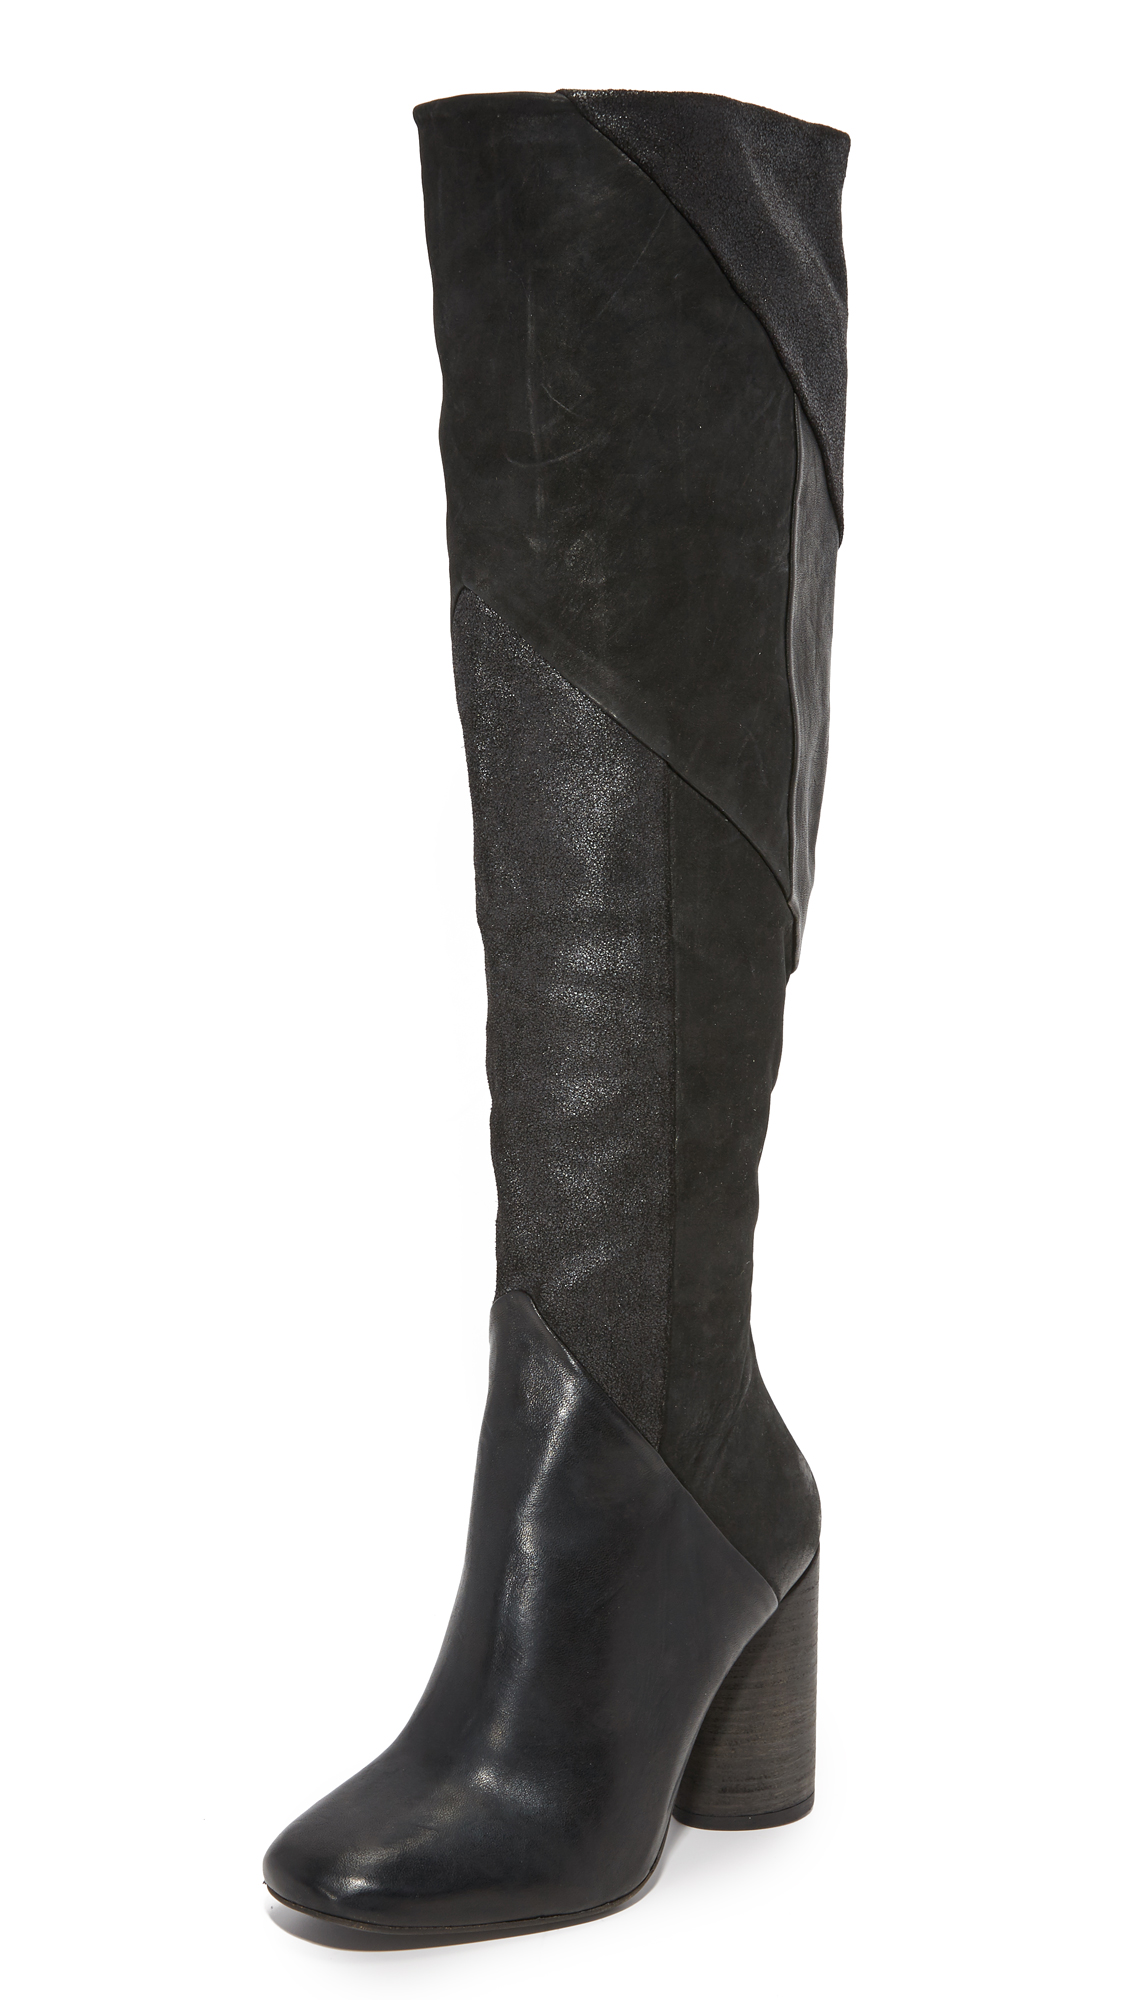 Free People Bright Lights Boots - Black